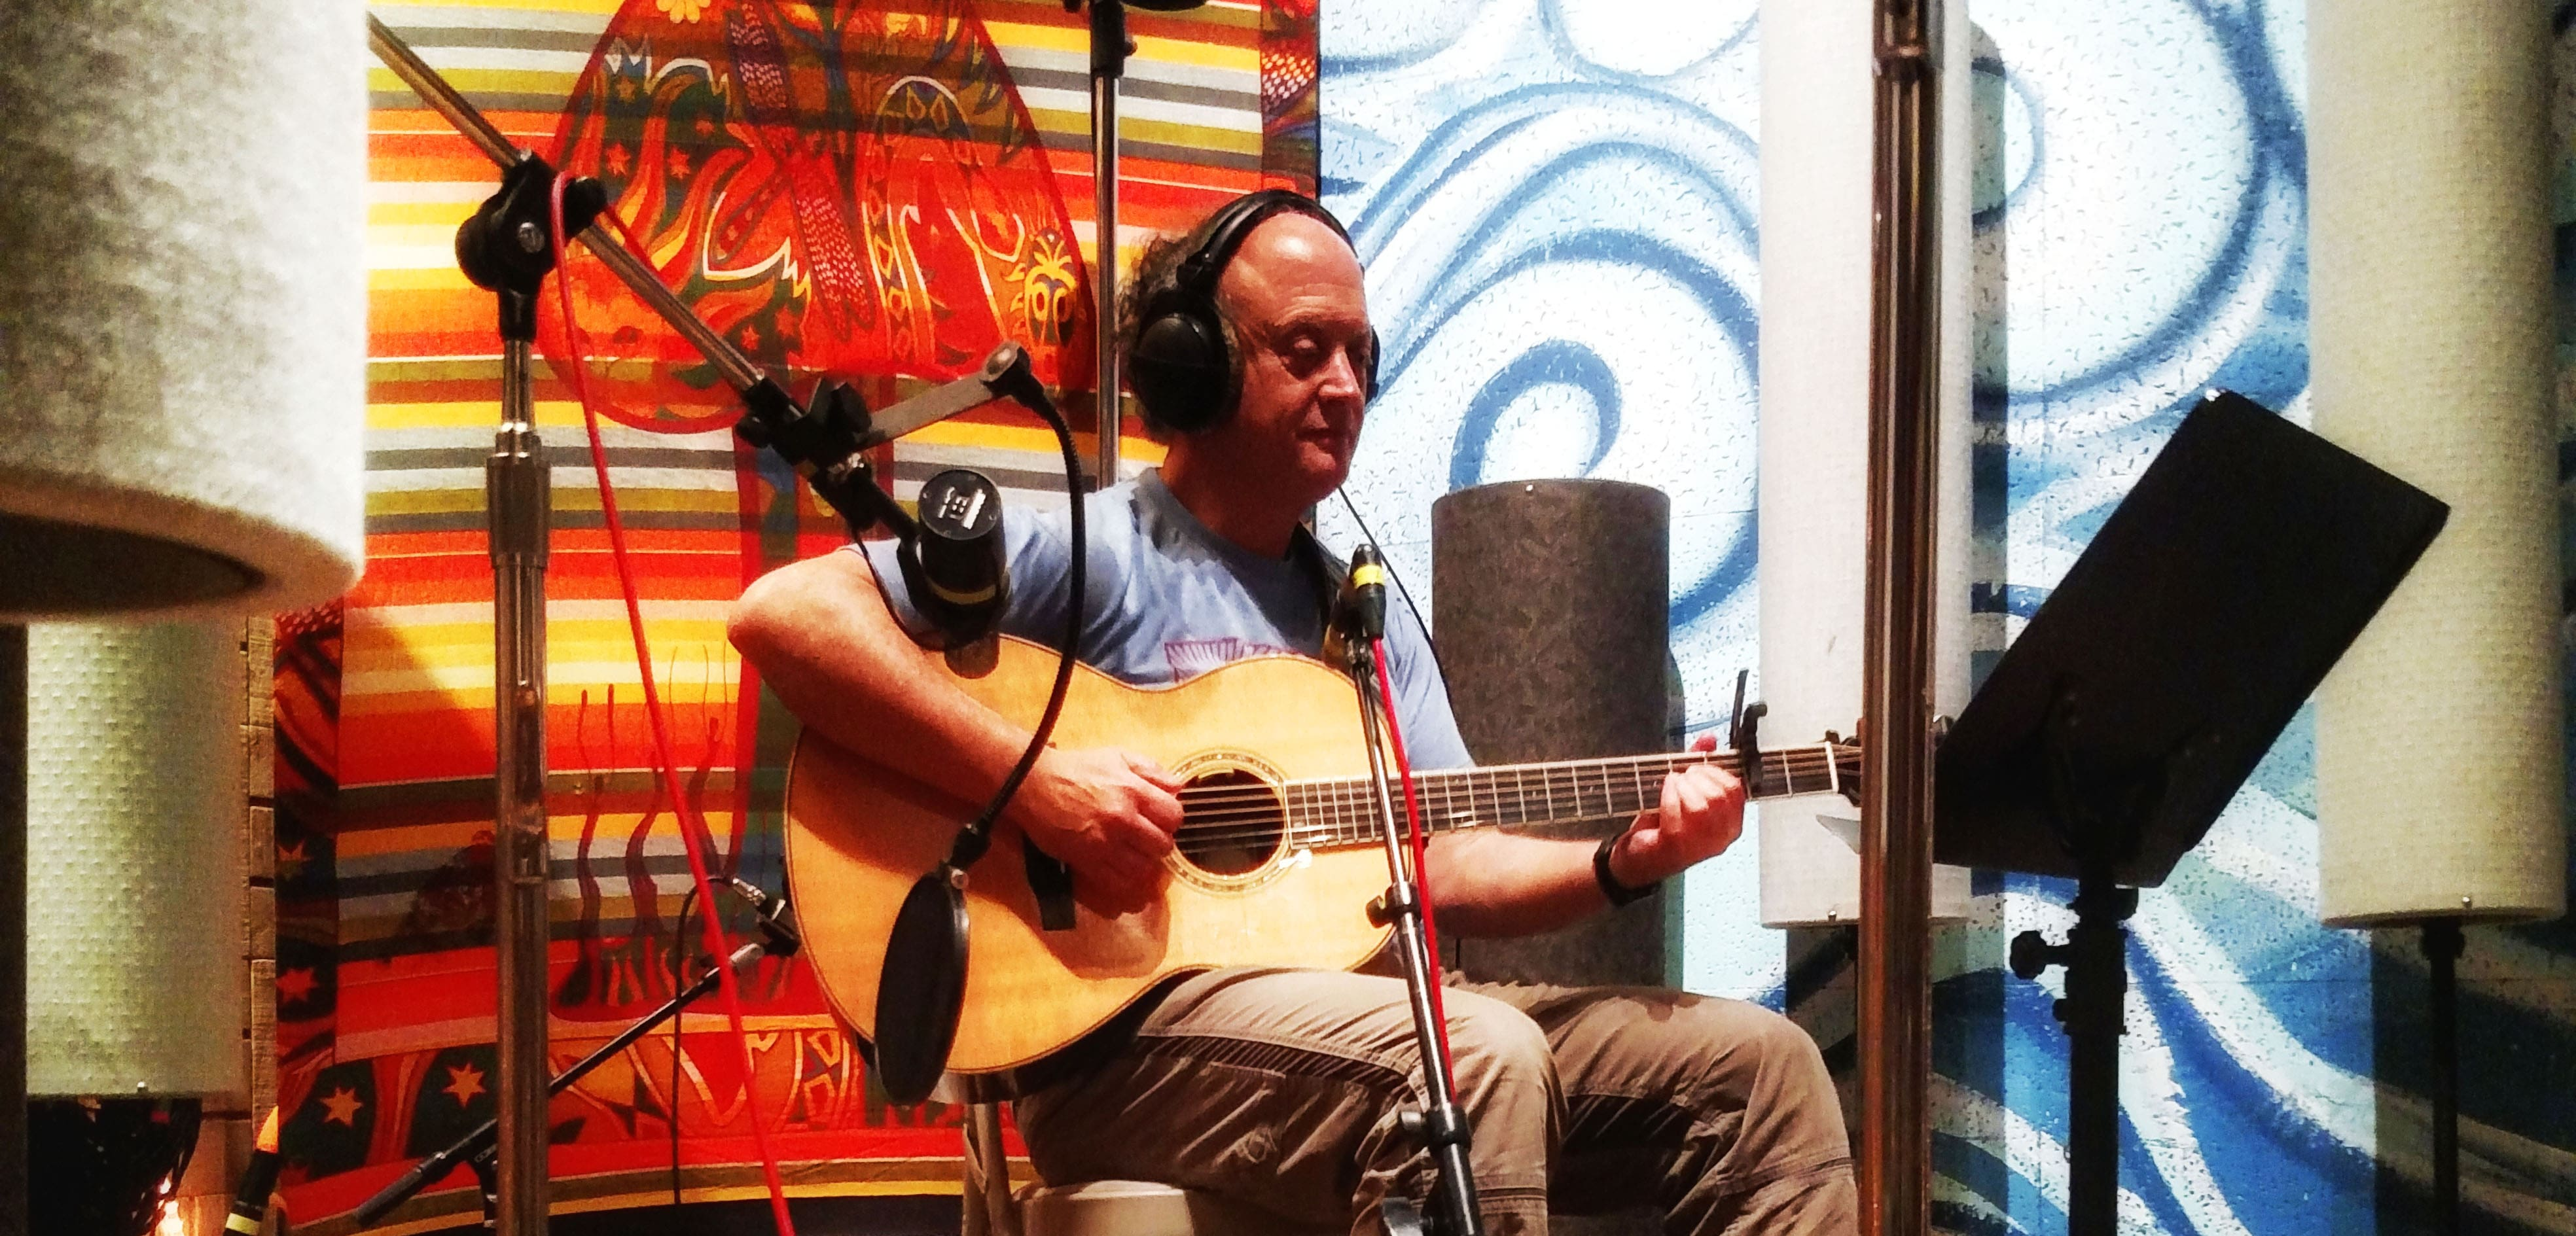 Kirk recording with his guitar in the Castaway 7 recording studio